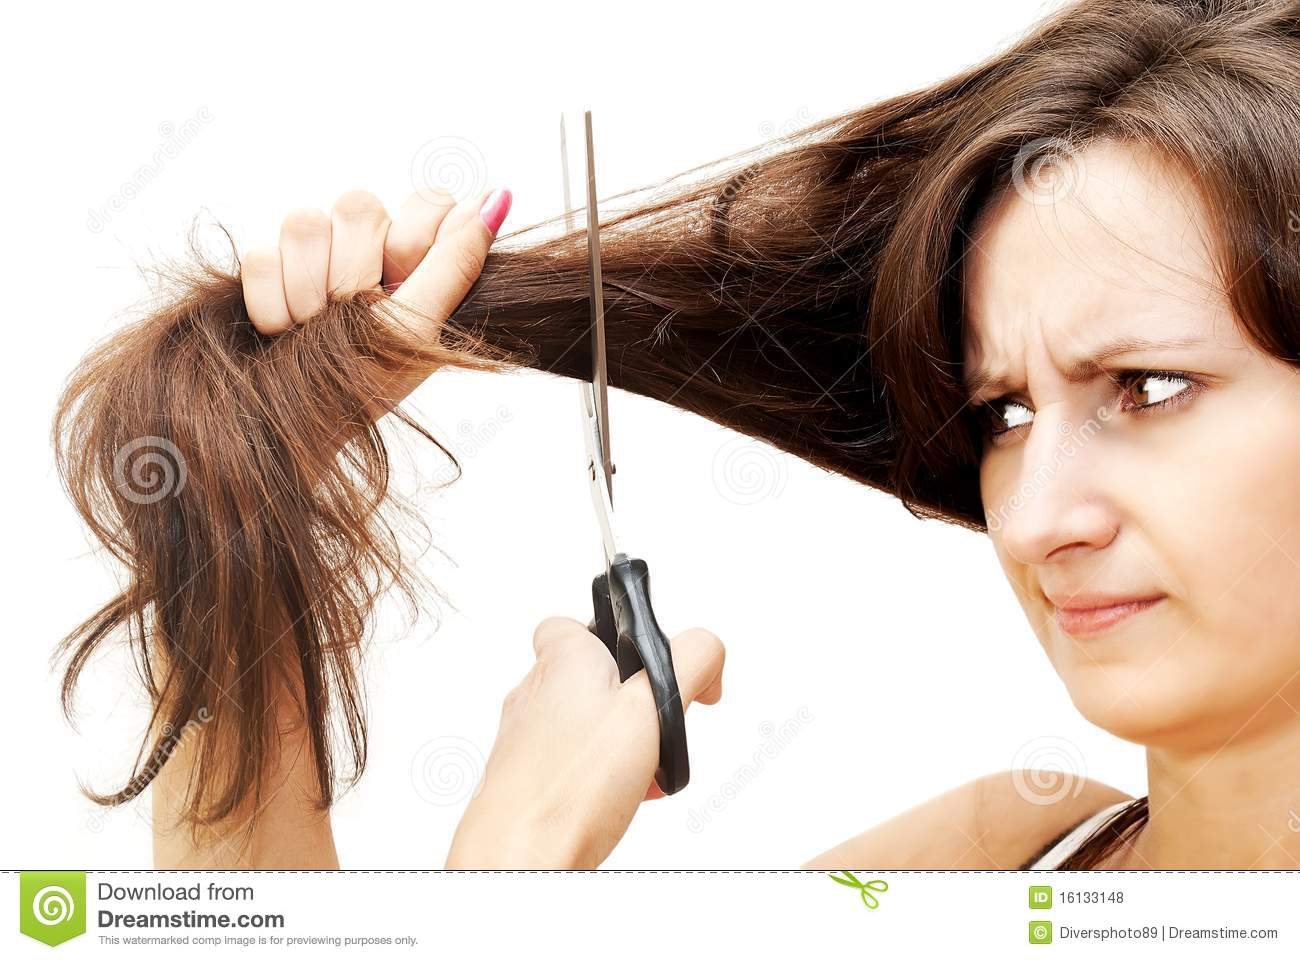 The image of a girl who cuts her hair